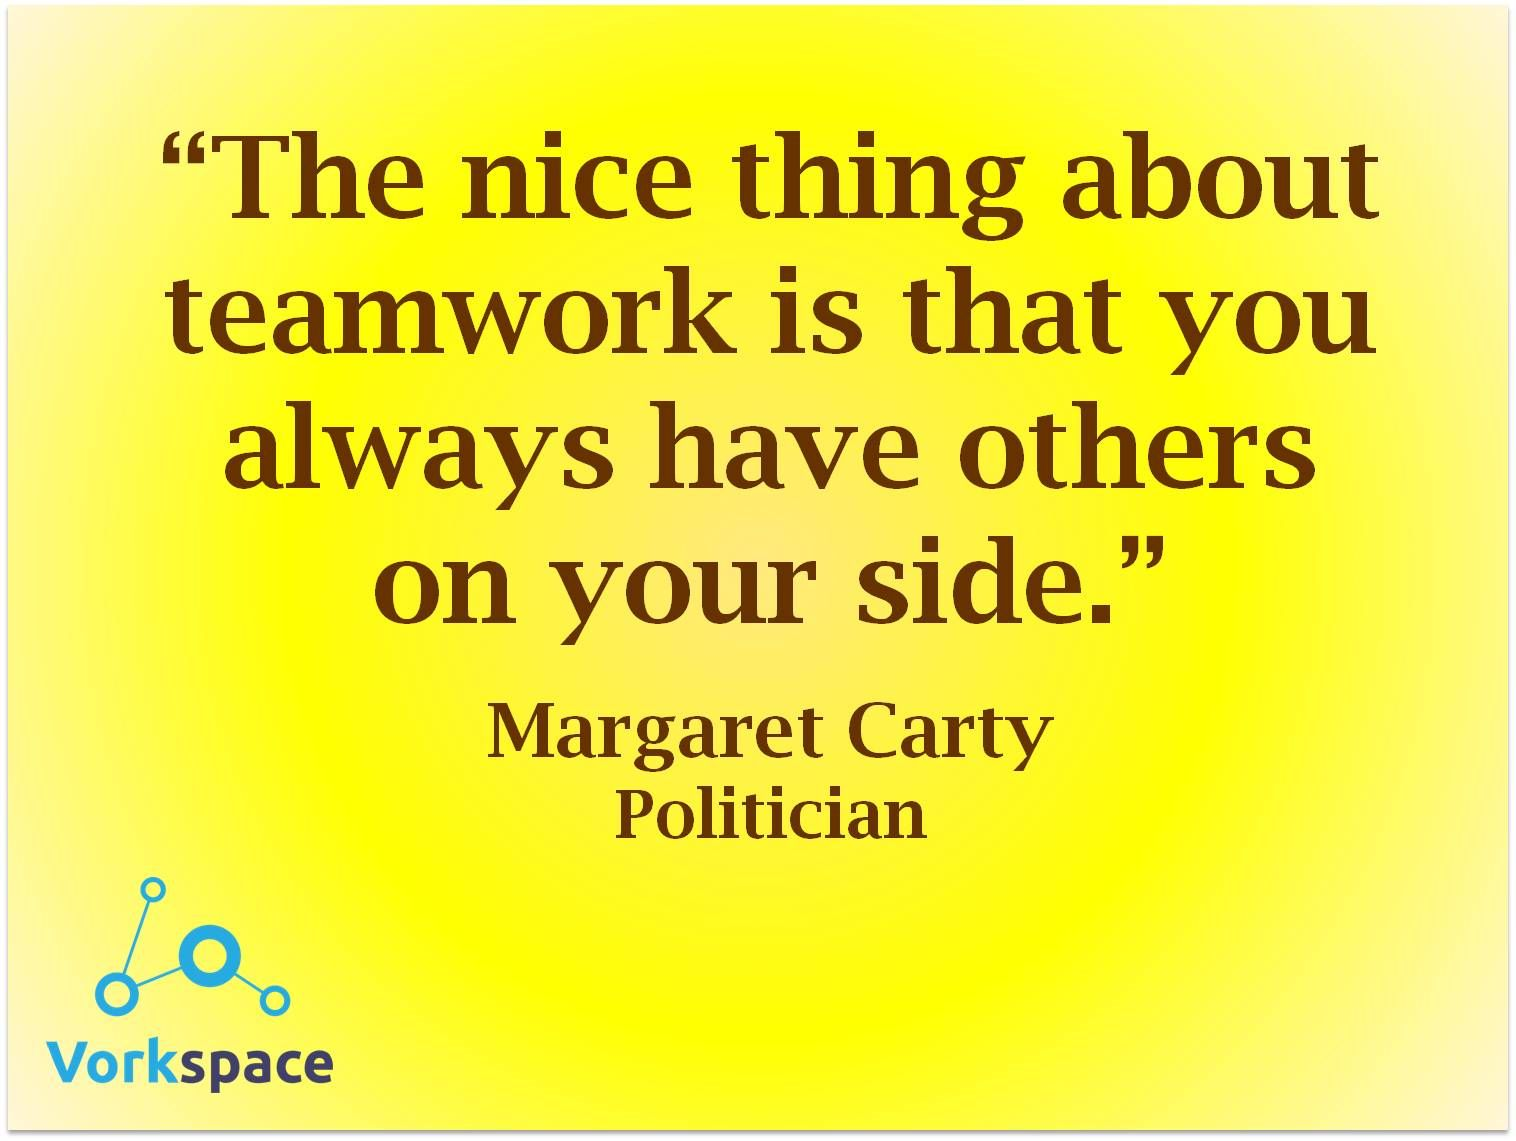 The nice thing about teamwork is that you always have others on your side -- Margaret Carty